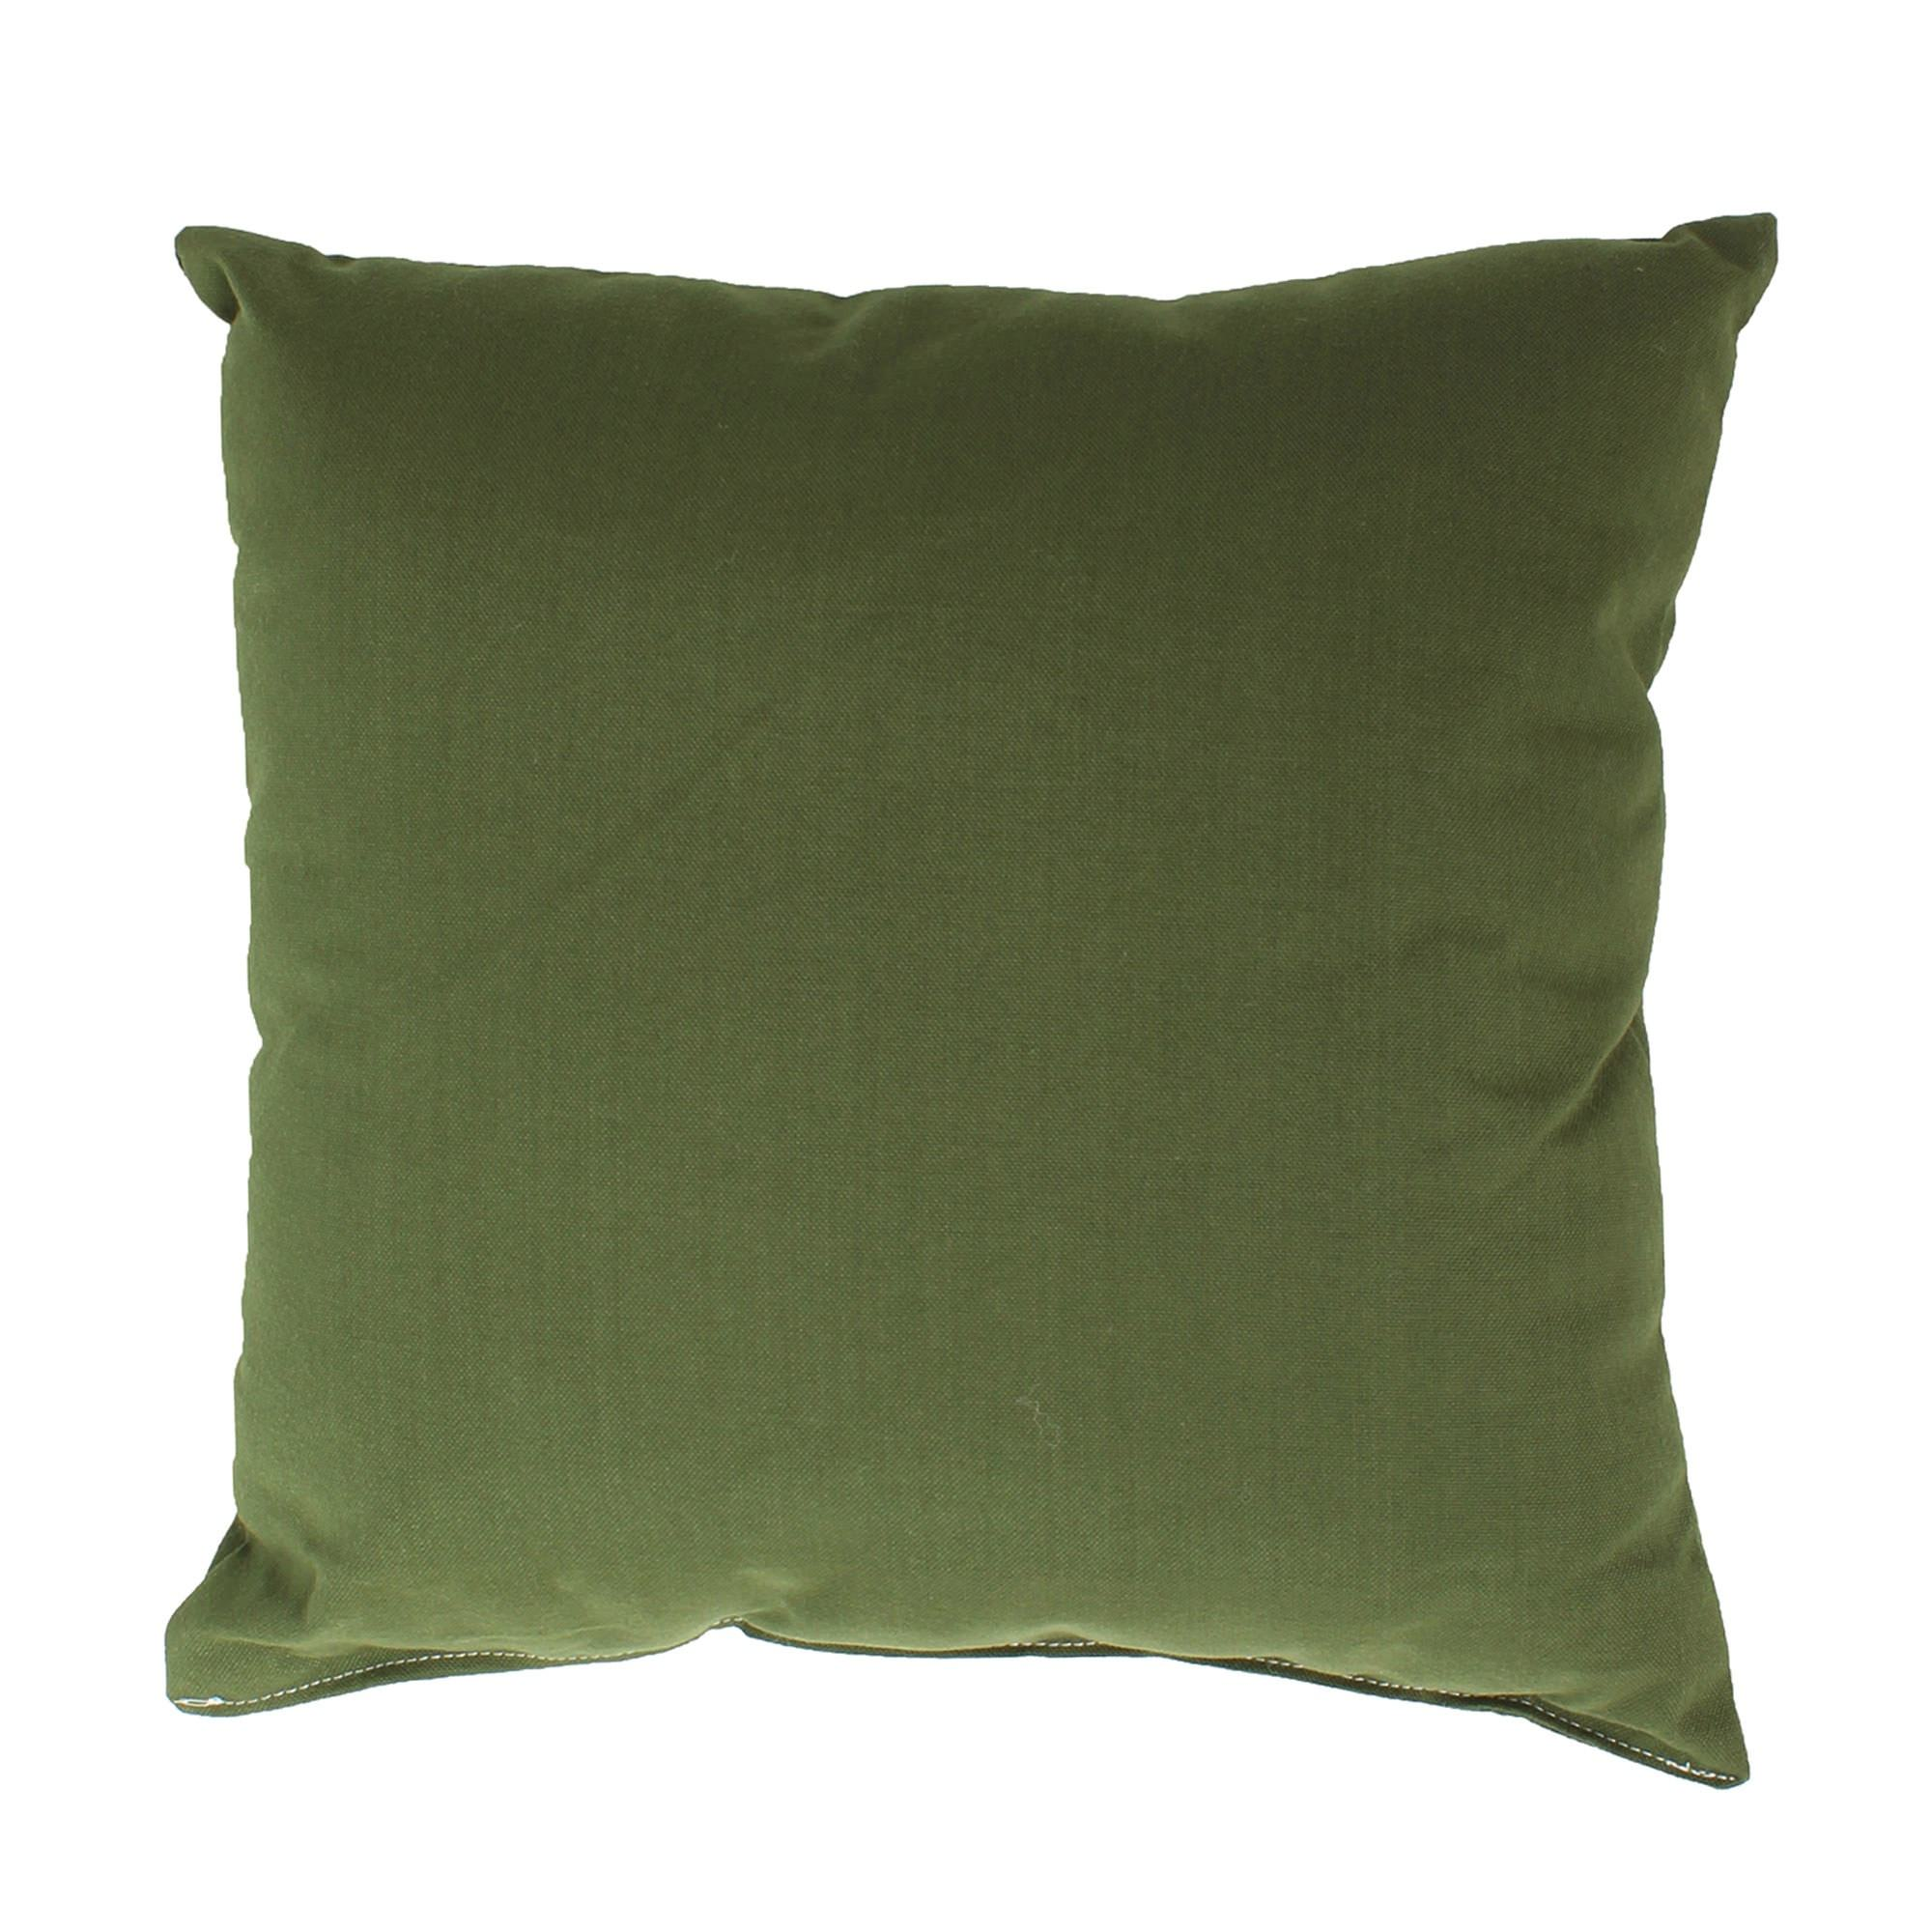 Shop Leaf Green Outdoor Throw Pillow 19 In X 19 In Square Essentials By Dfo Pillows Outdoors Dfohome Com